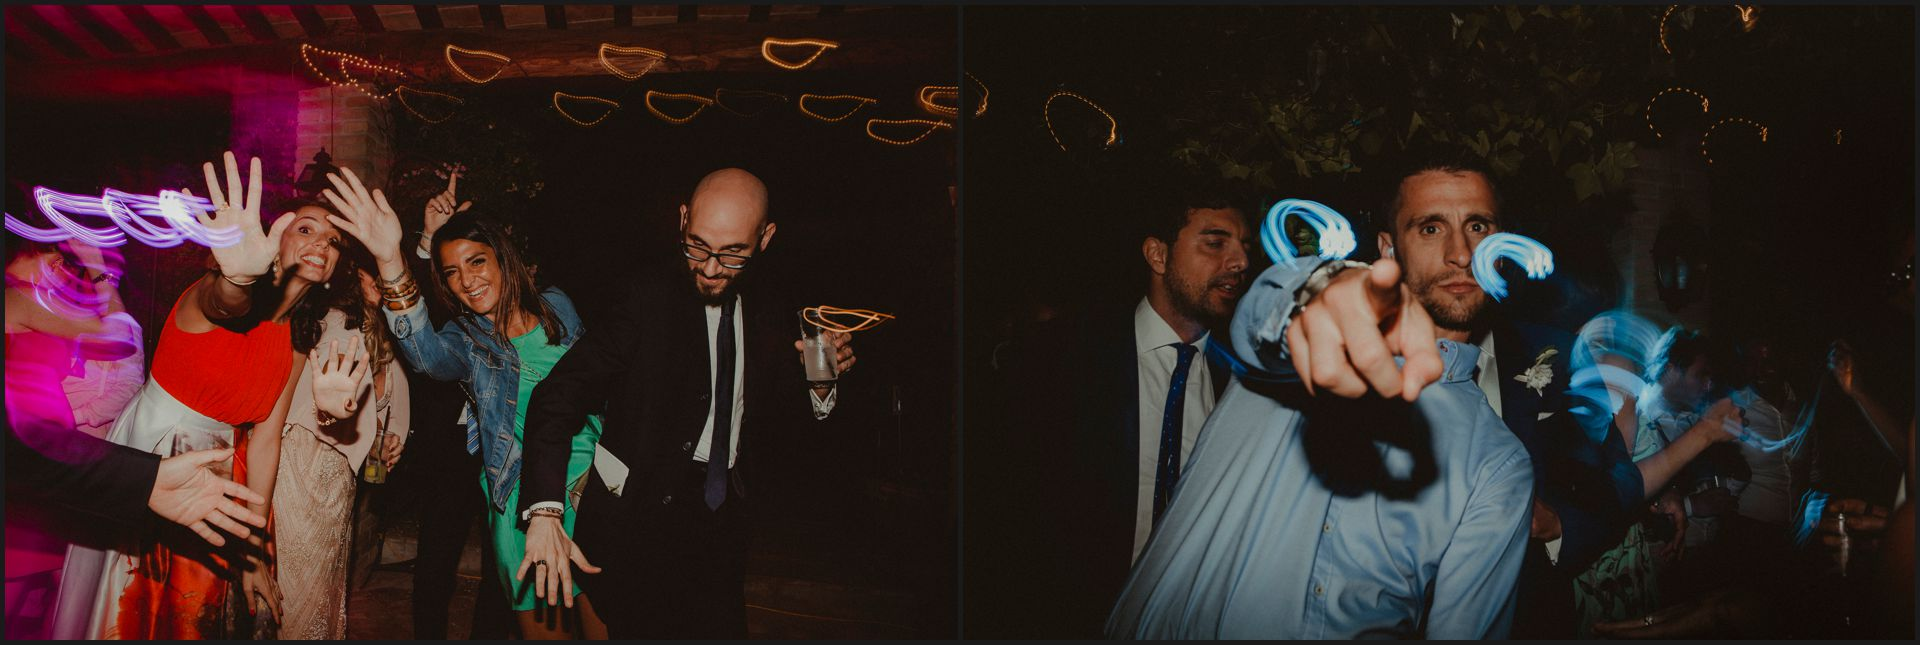 tenuta di canonica, umbria, wedding, party, dance, crazy, bride, groom